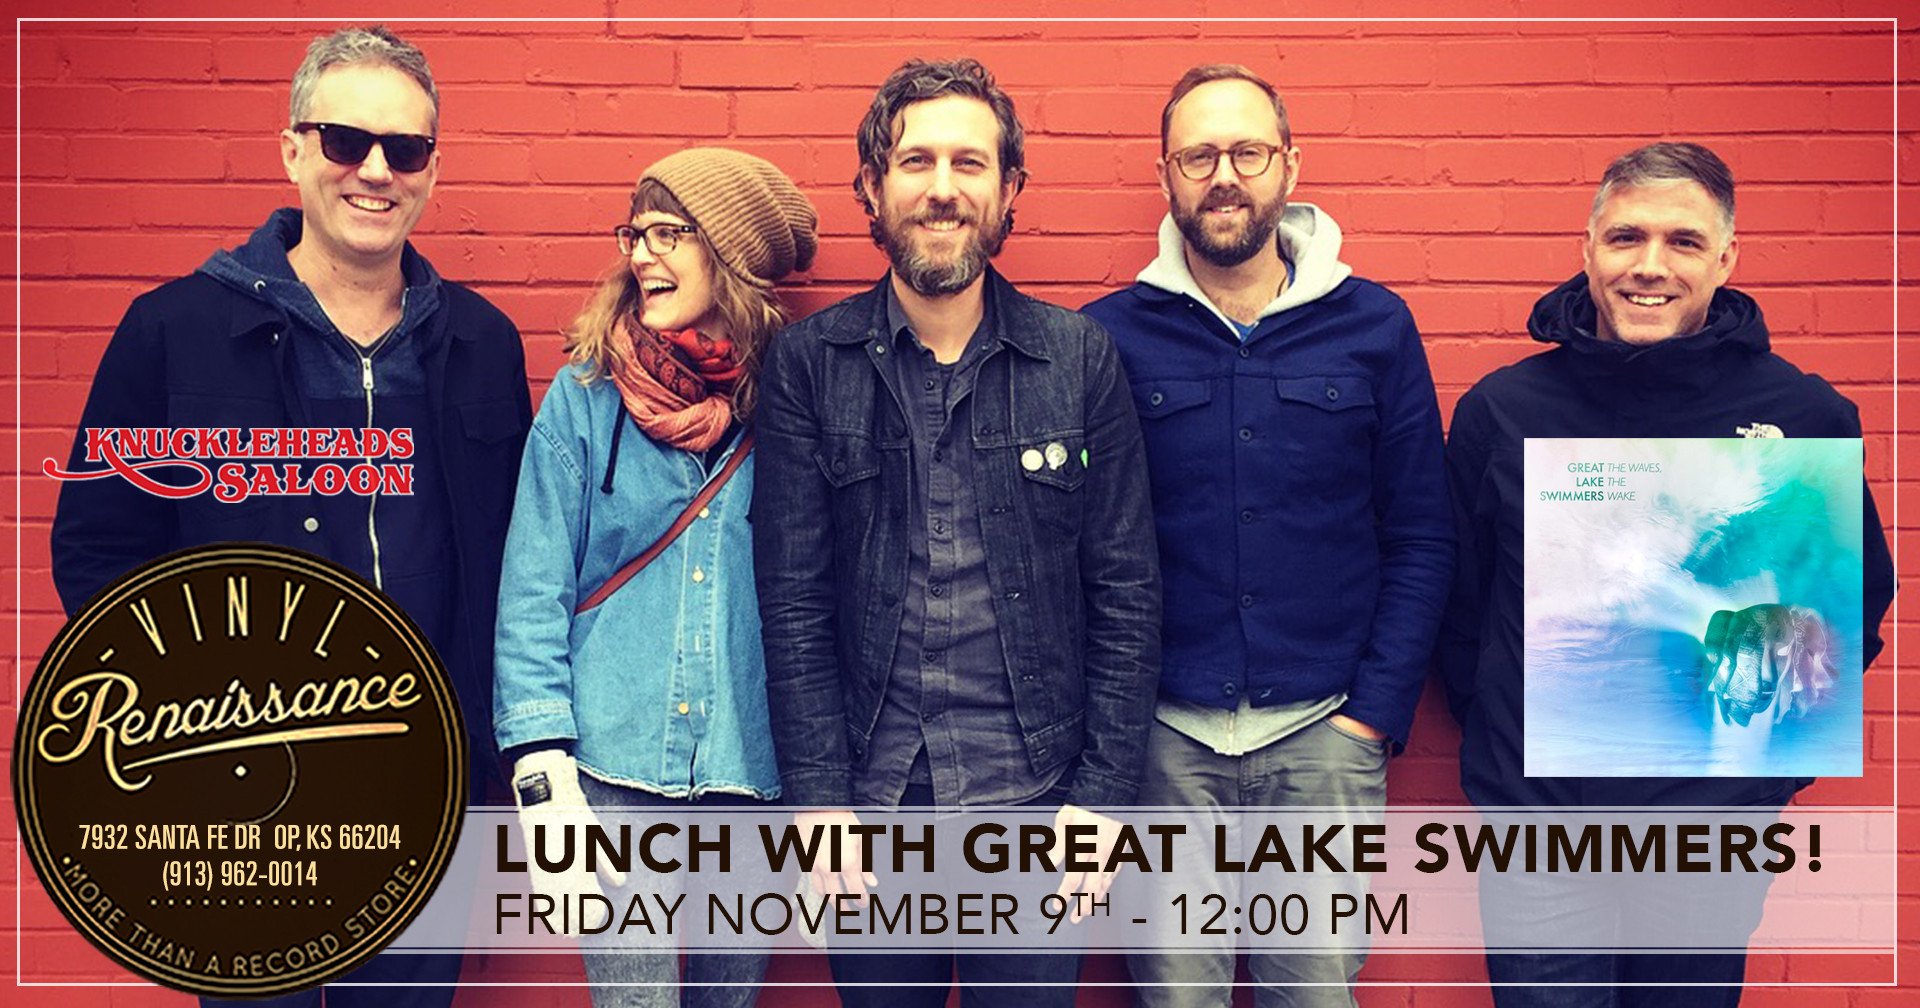 Lunch with Great Lake Swimmers!